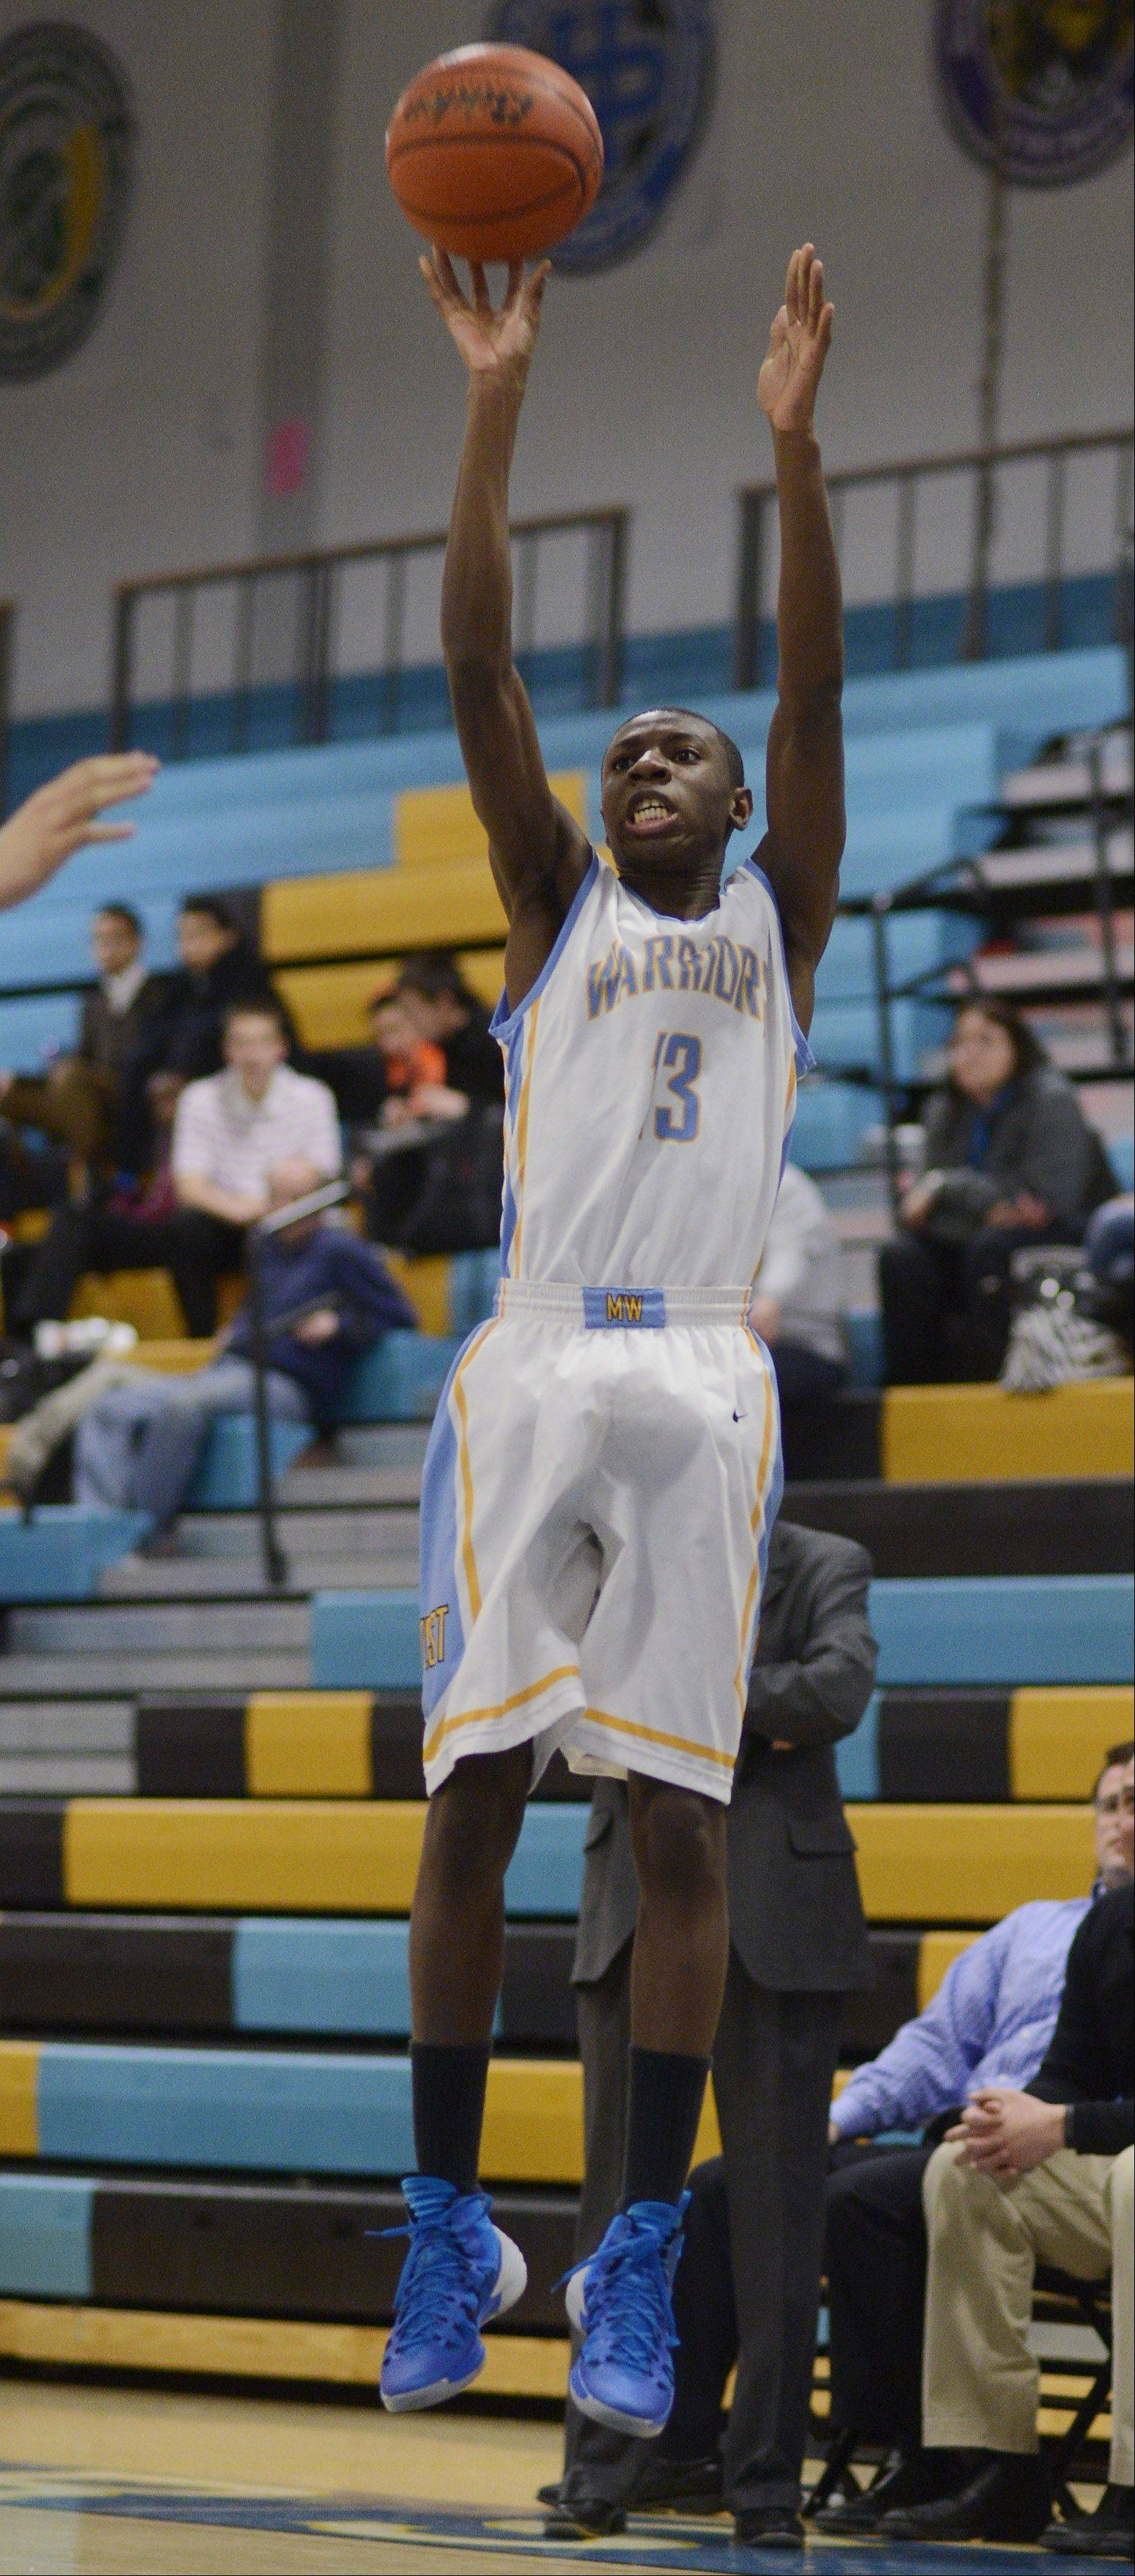 Maine West's Josh Redd shoots a 3-pointer during Tuesday's game against Fenton in Des Plaines.